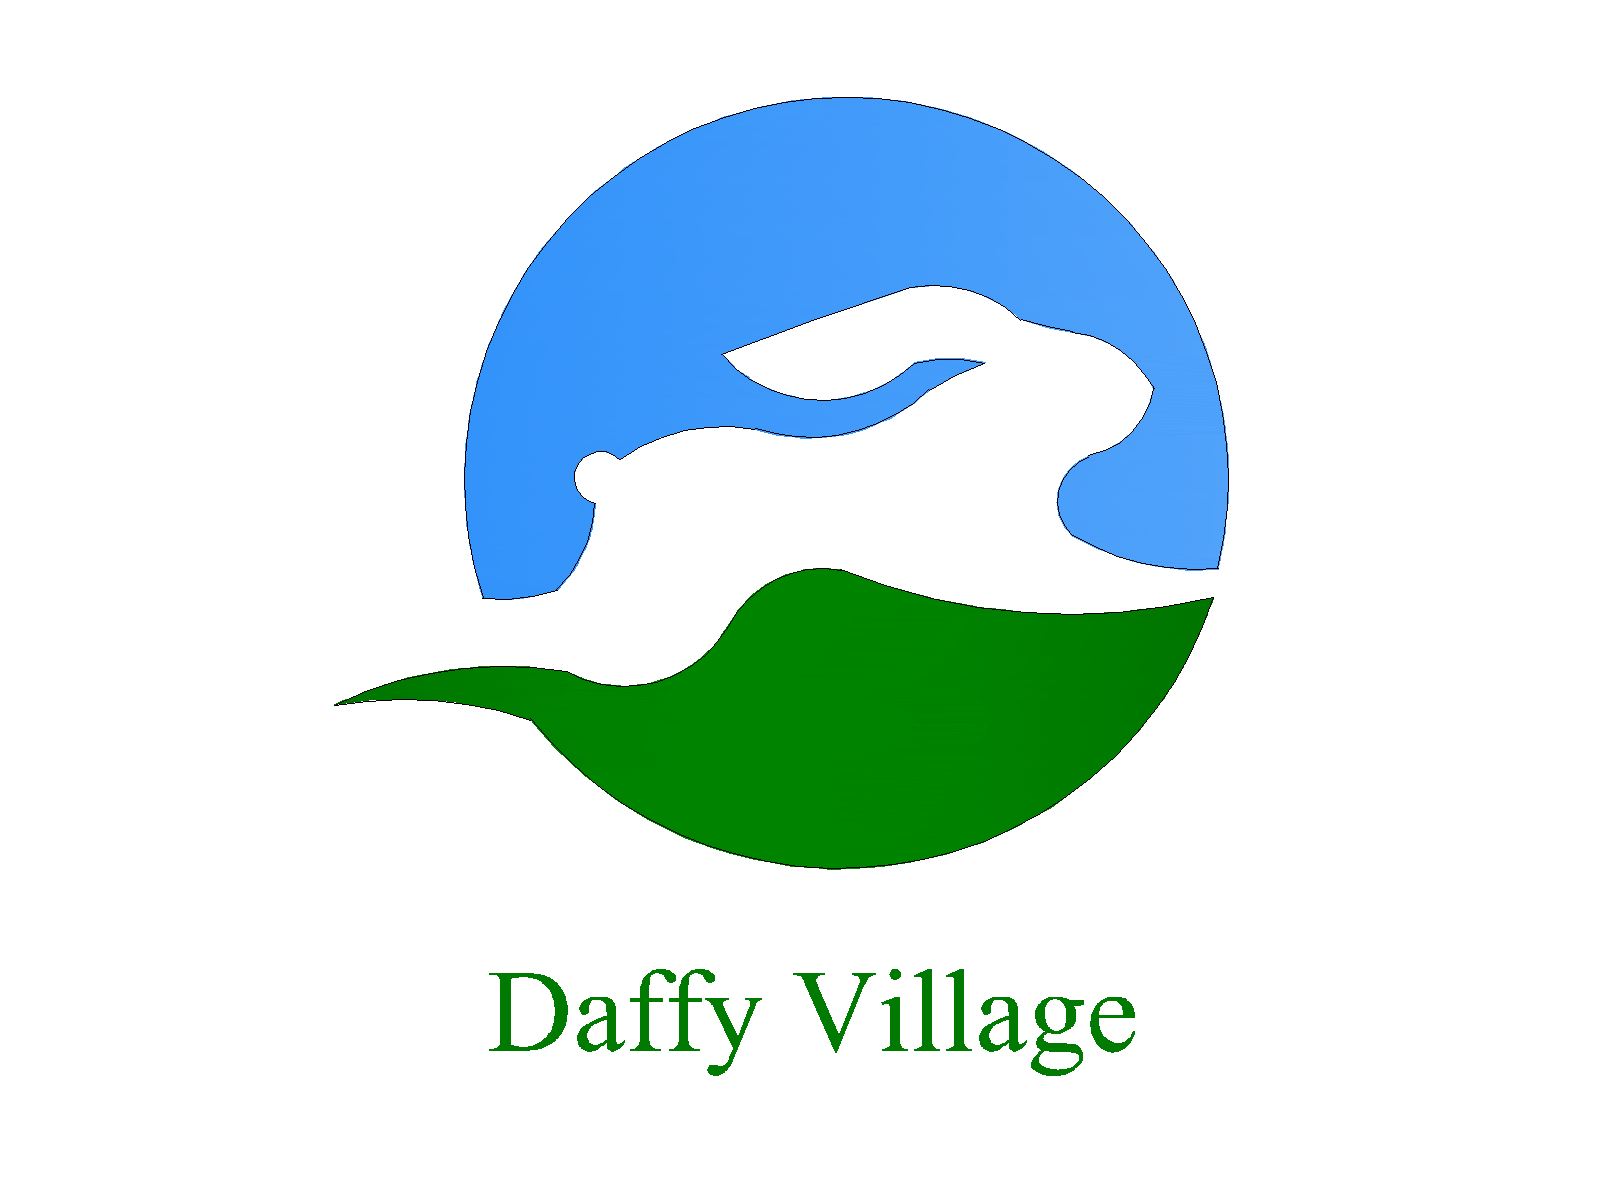 Daffy Village lgoo